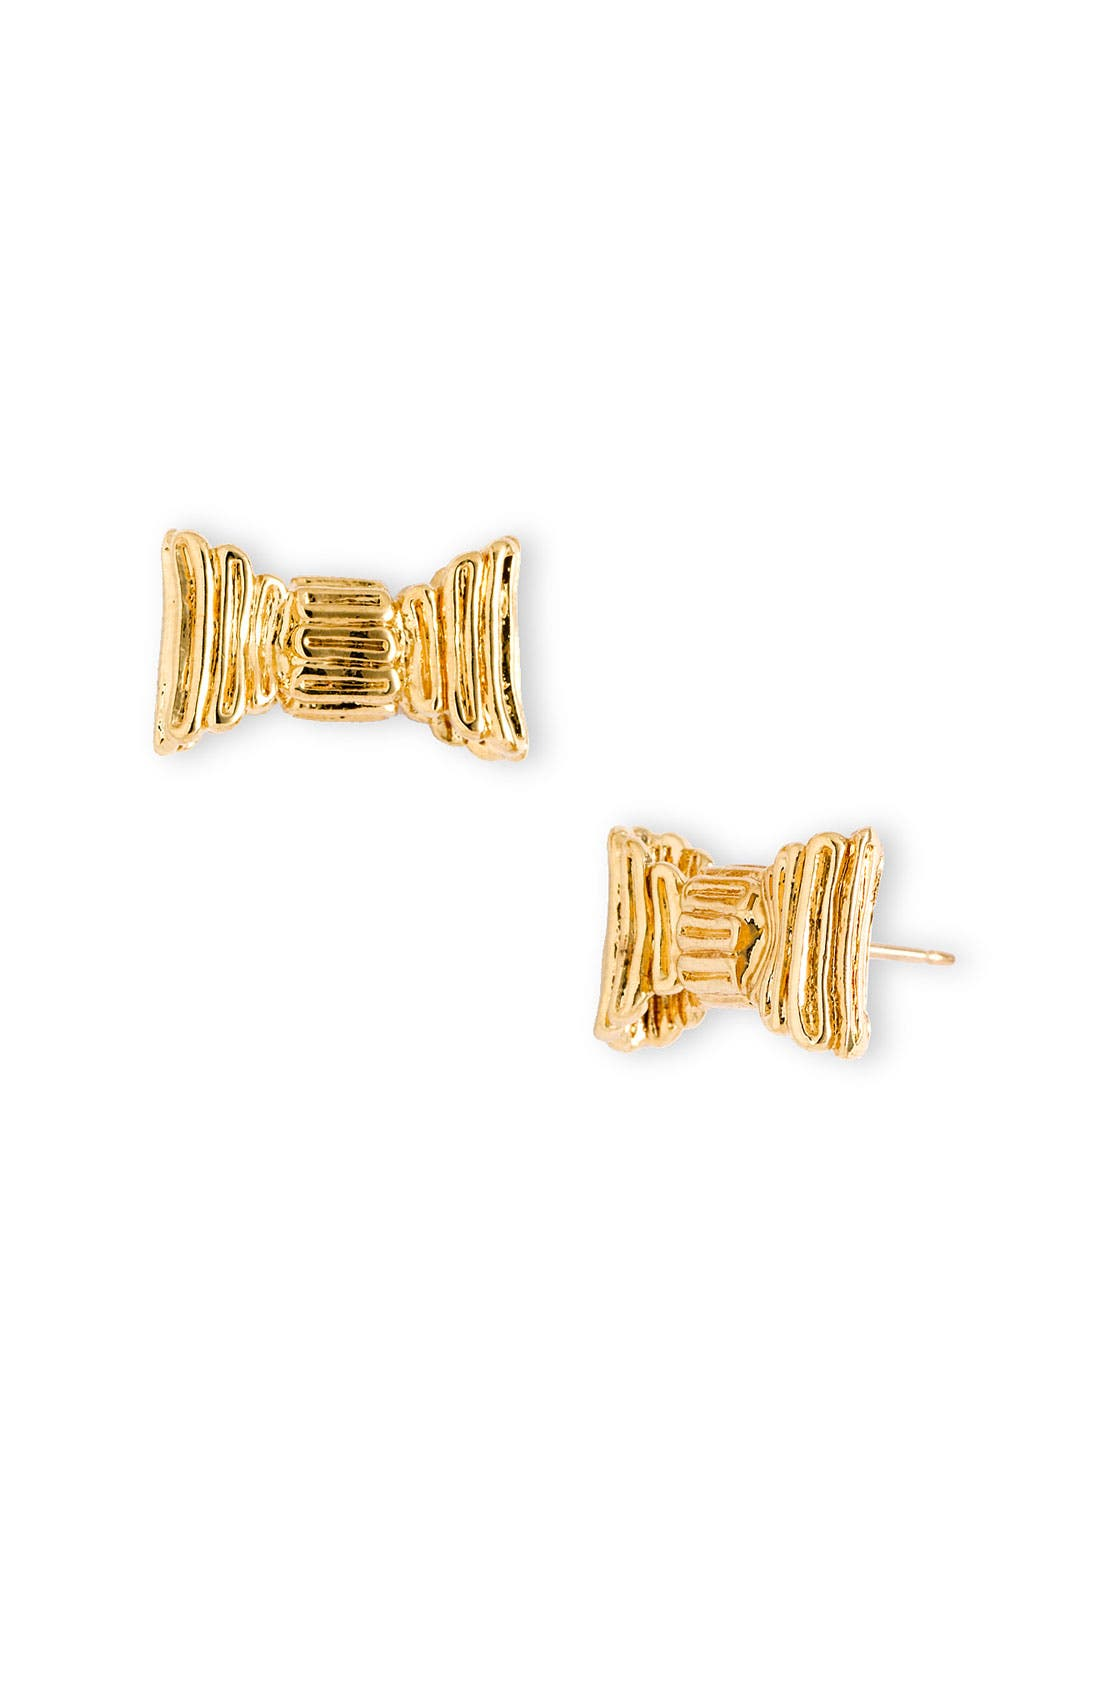 Alternate Image 1 Selected - kate spade new york 'all wrapped up' bow stud earrings